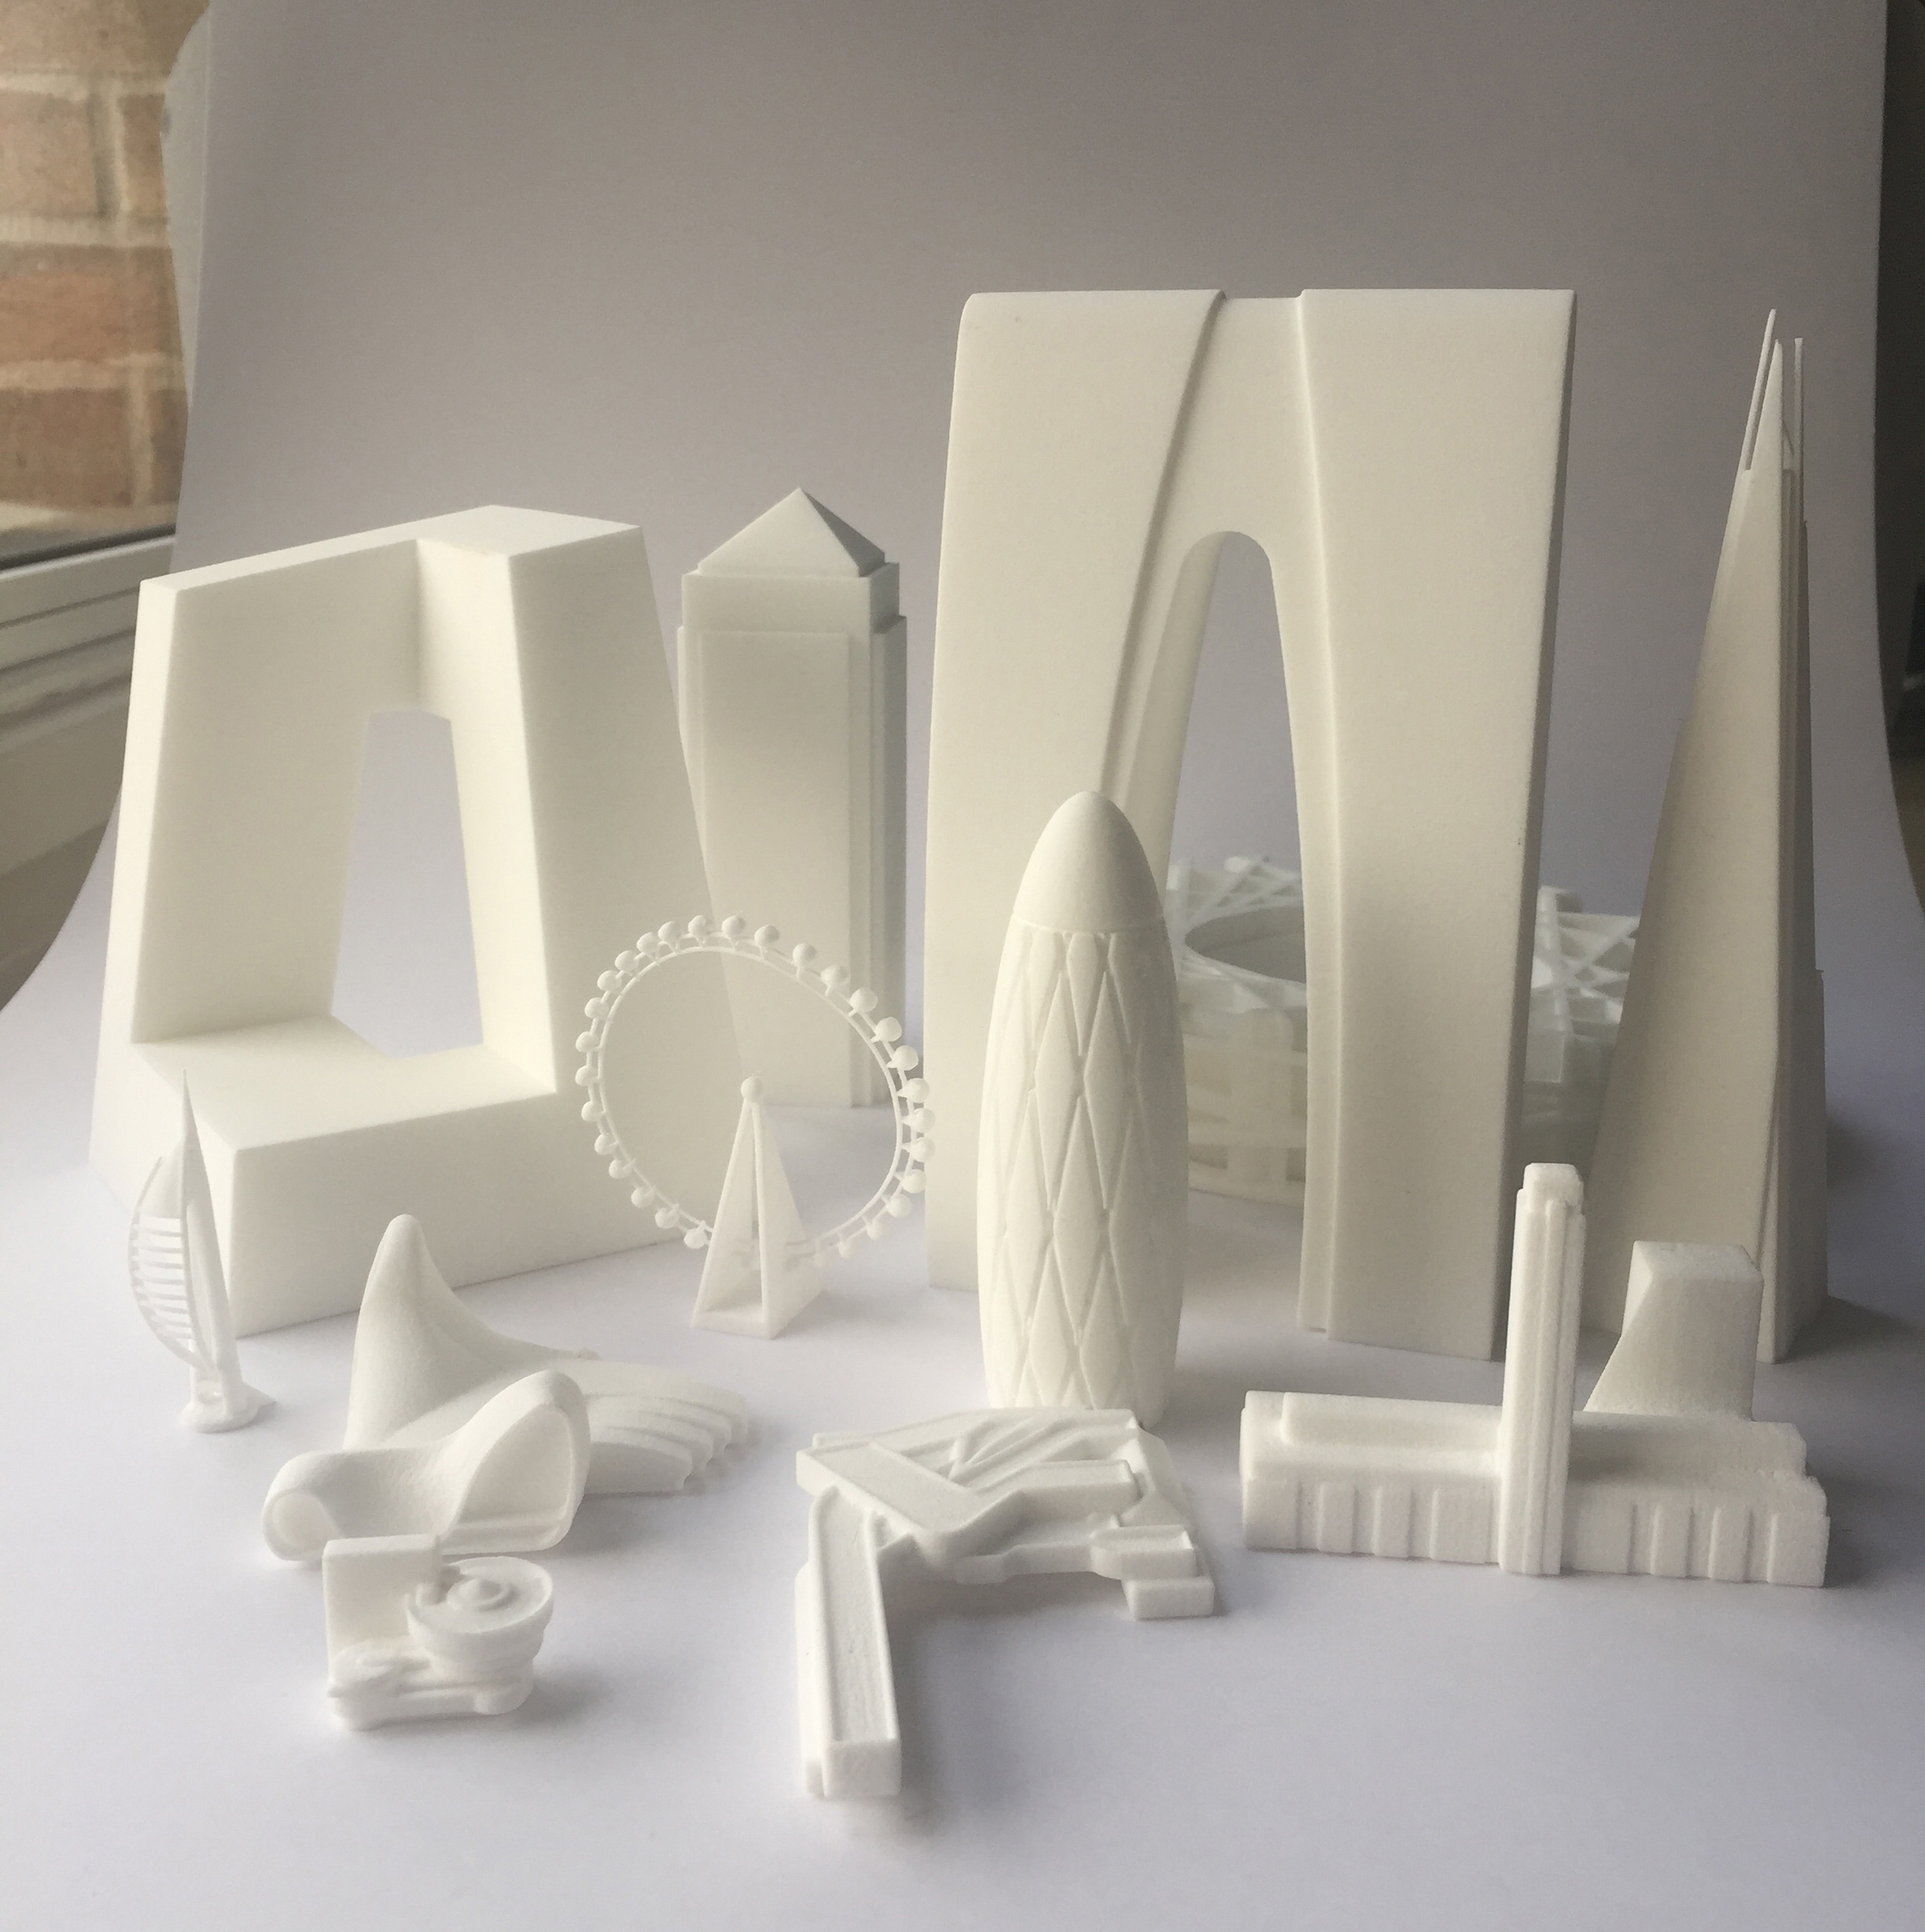 close up of the models.jpg